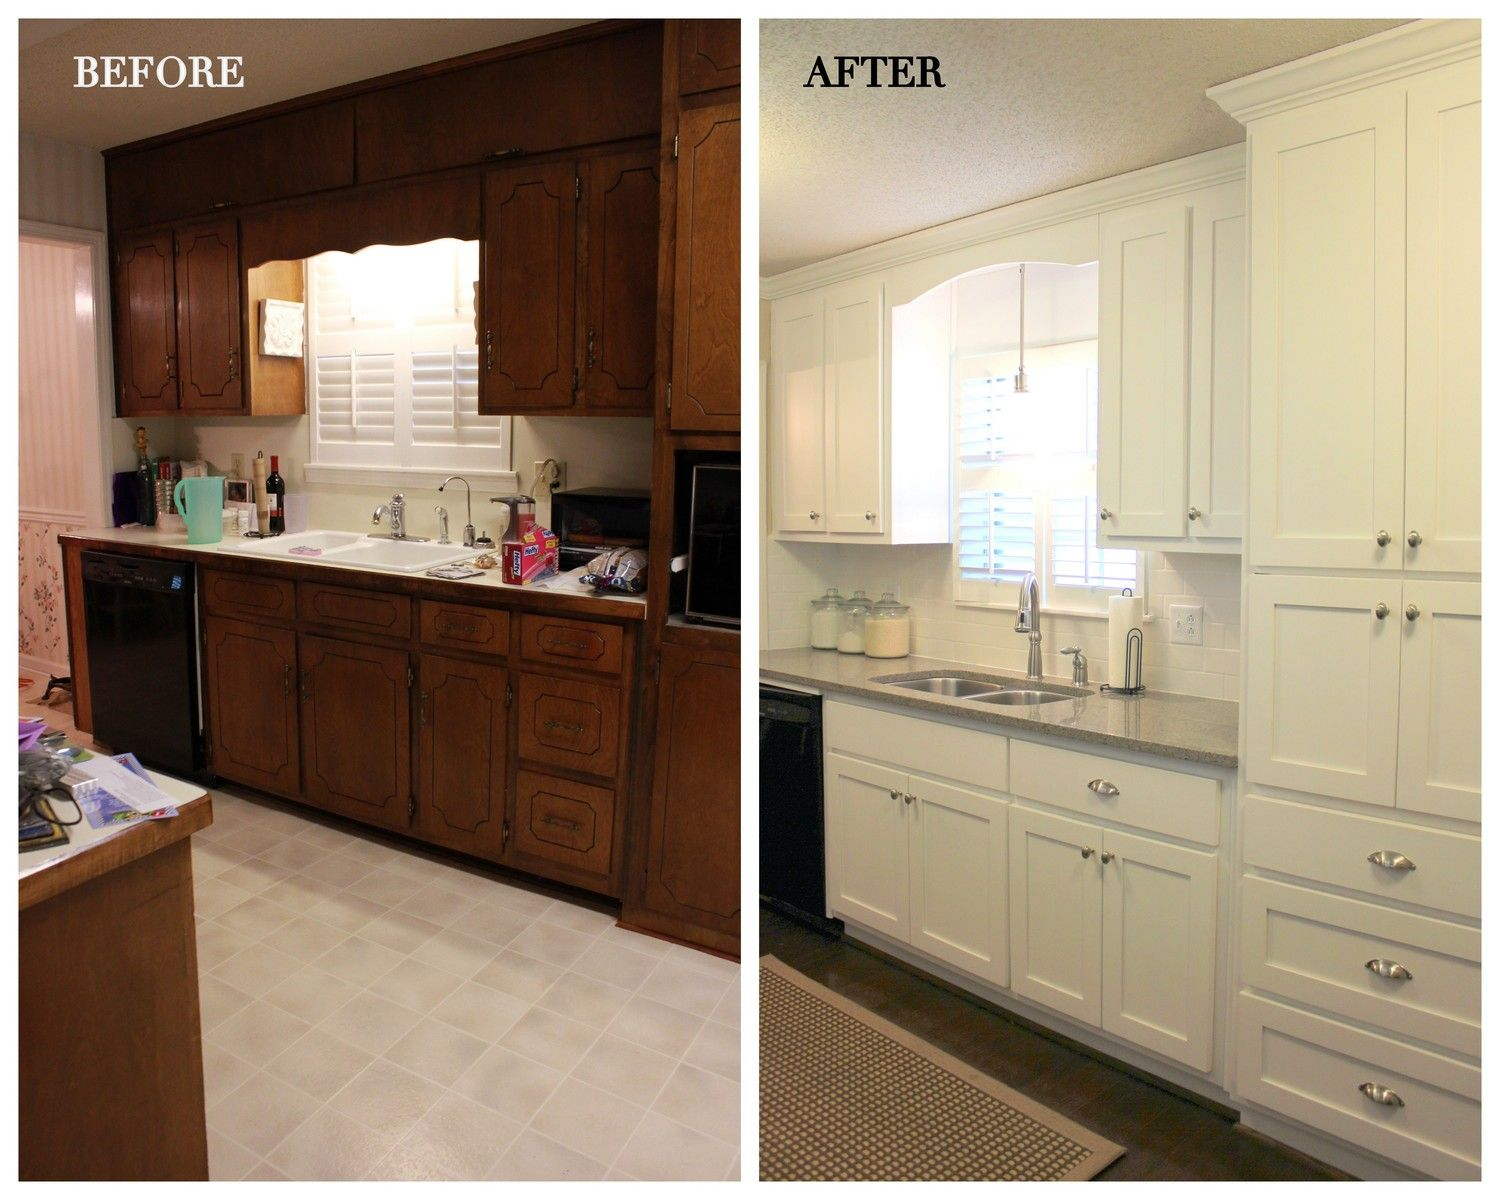 70s Kitchen Before And After 3a Design Studio Kitchen Layout In This Article Very Simil Farmhouse Kitchen Remodel Kitchen Remodel Layout Kitchen Remodel Cost